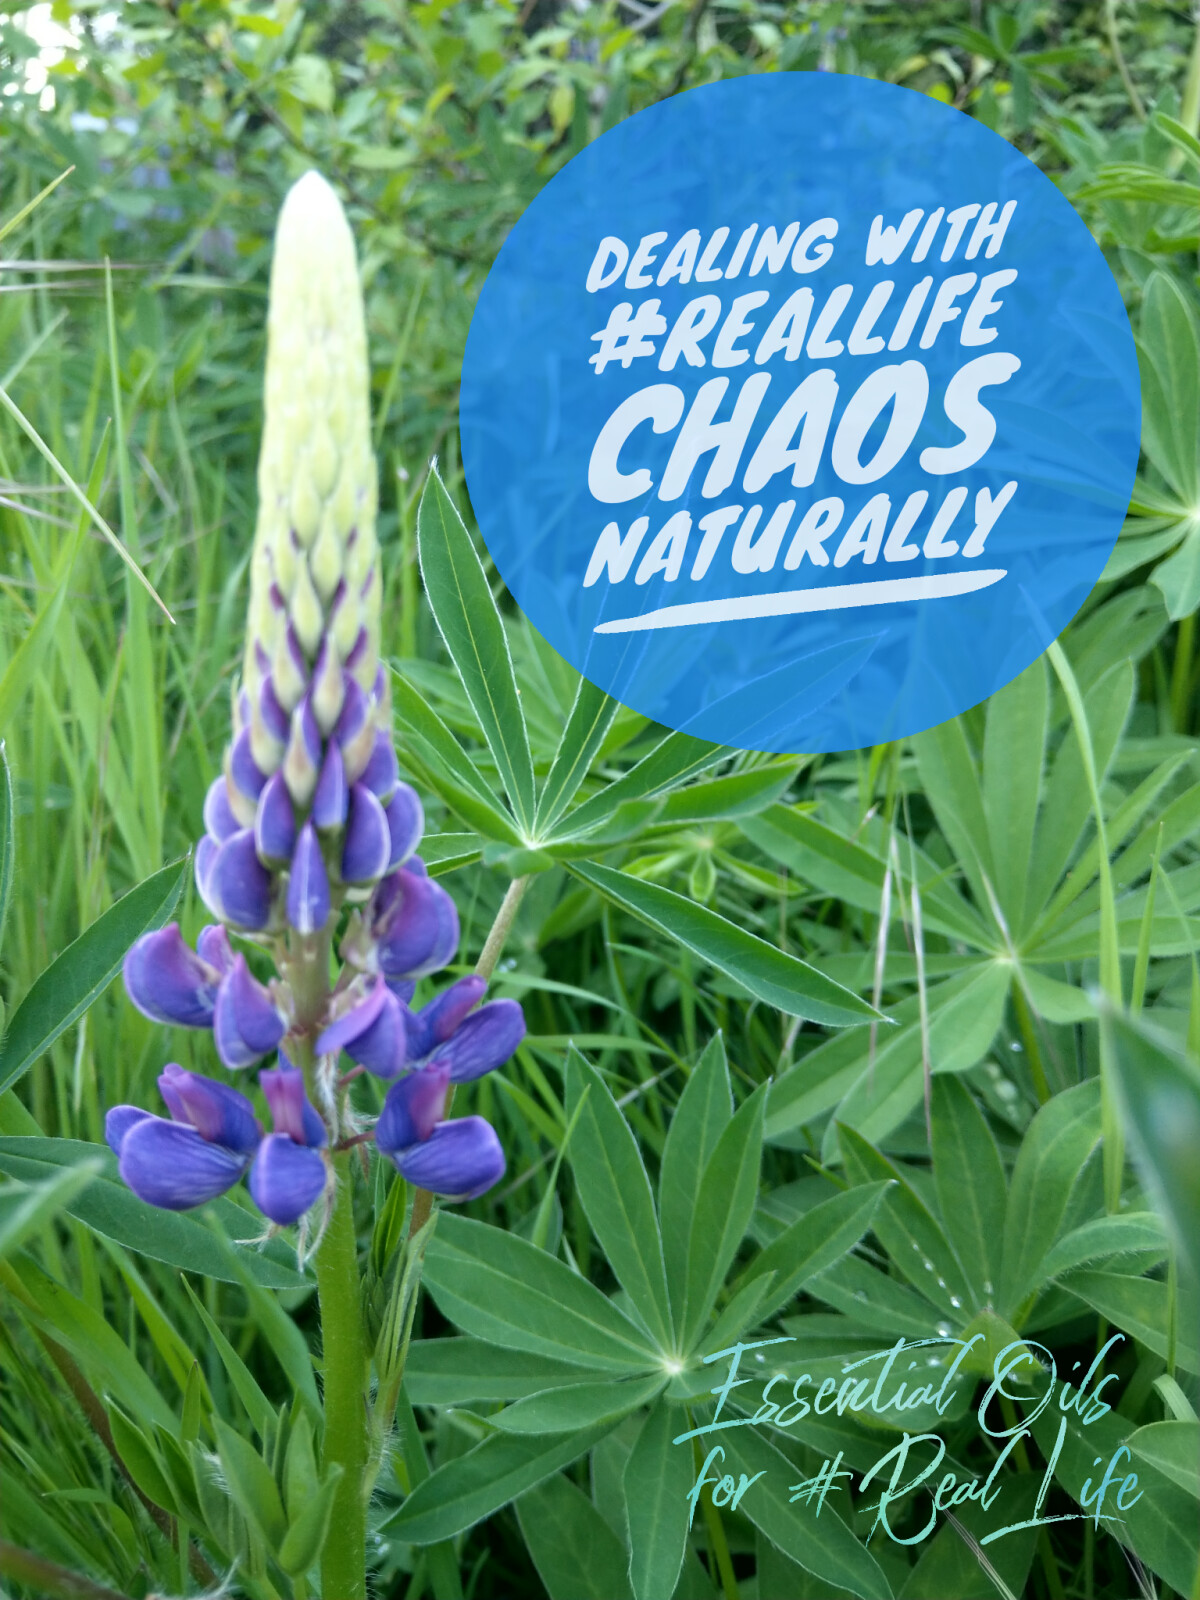 Dealing with #RealLife Chaos Naturally